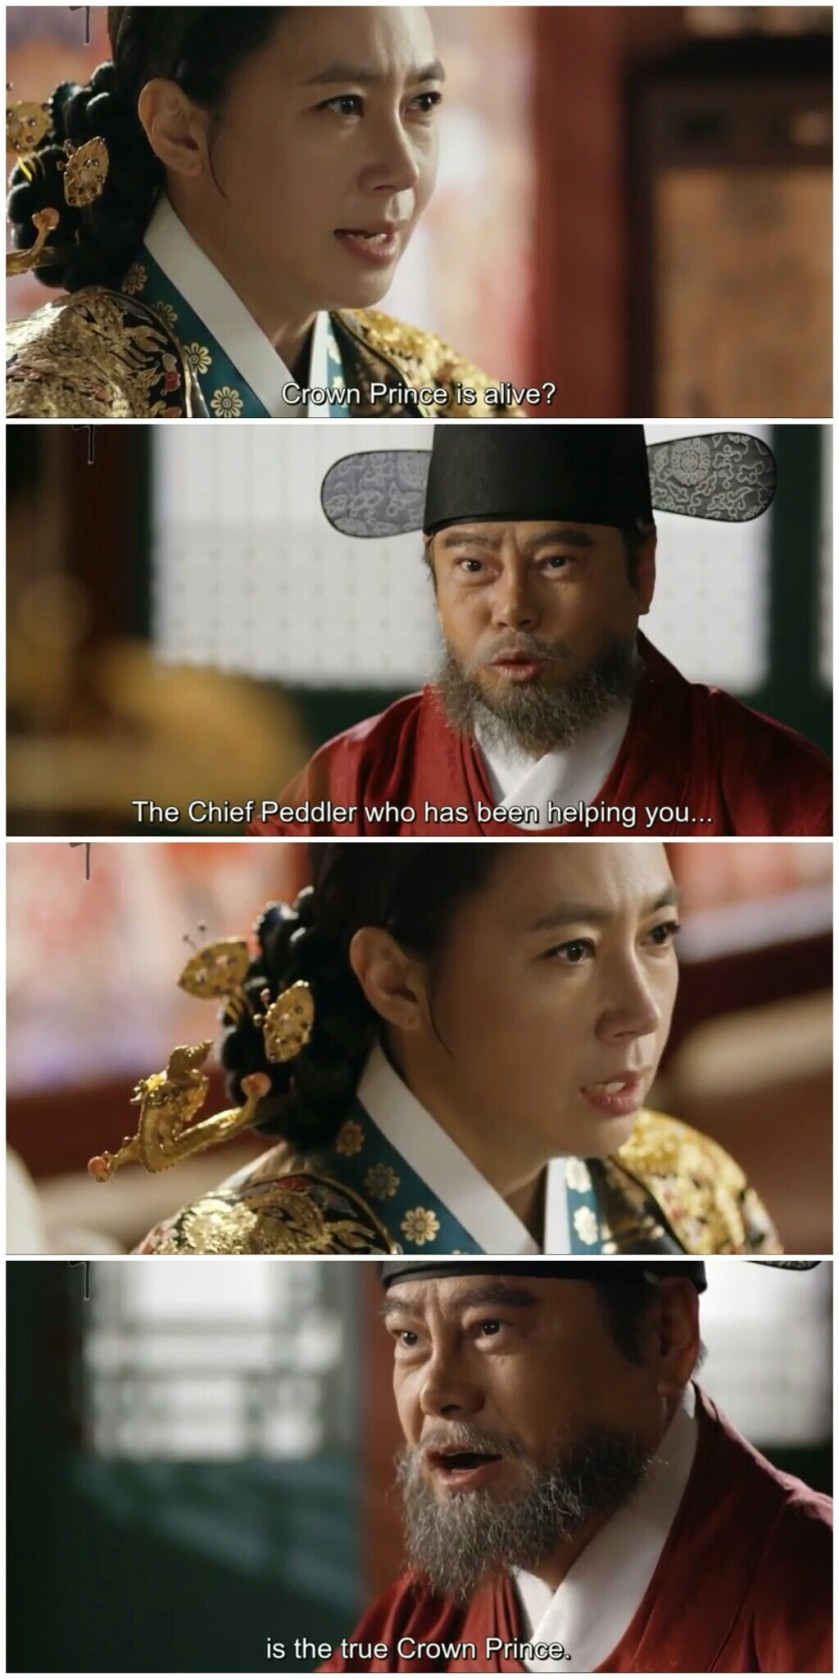 Ruler Master of the Mask ep 21 22 queen